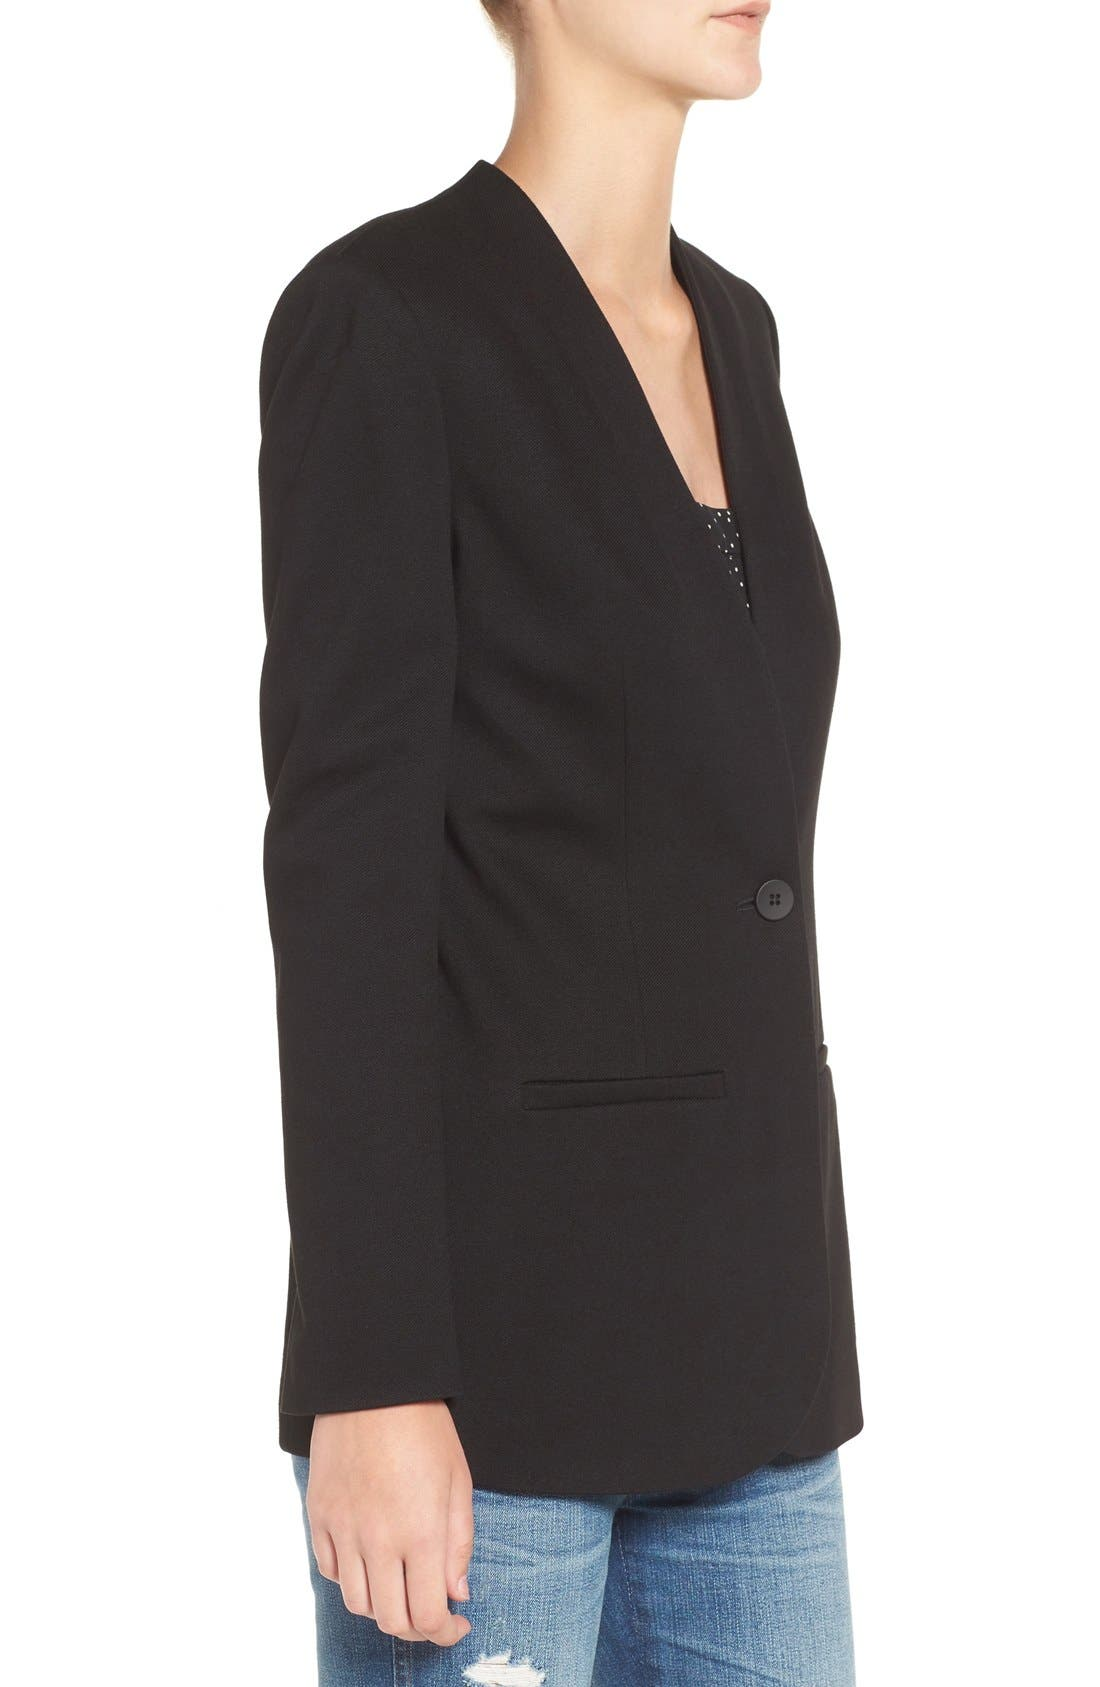 Tribune Blazer,                             Alternate thumbnail 3, color,                             TRUE BLACK